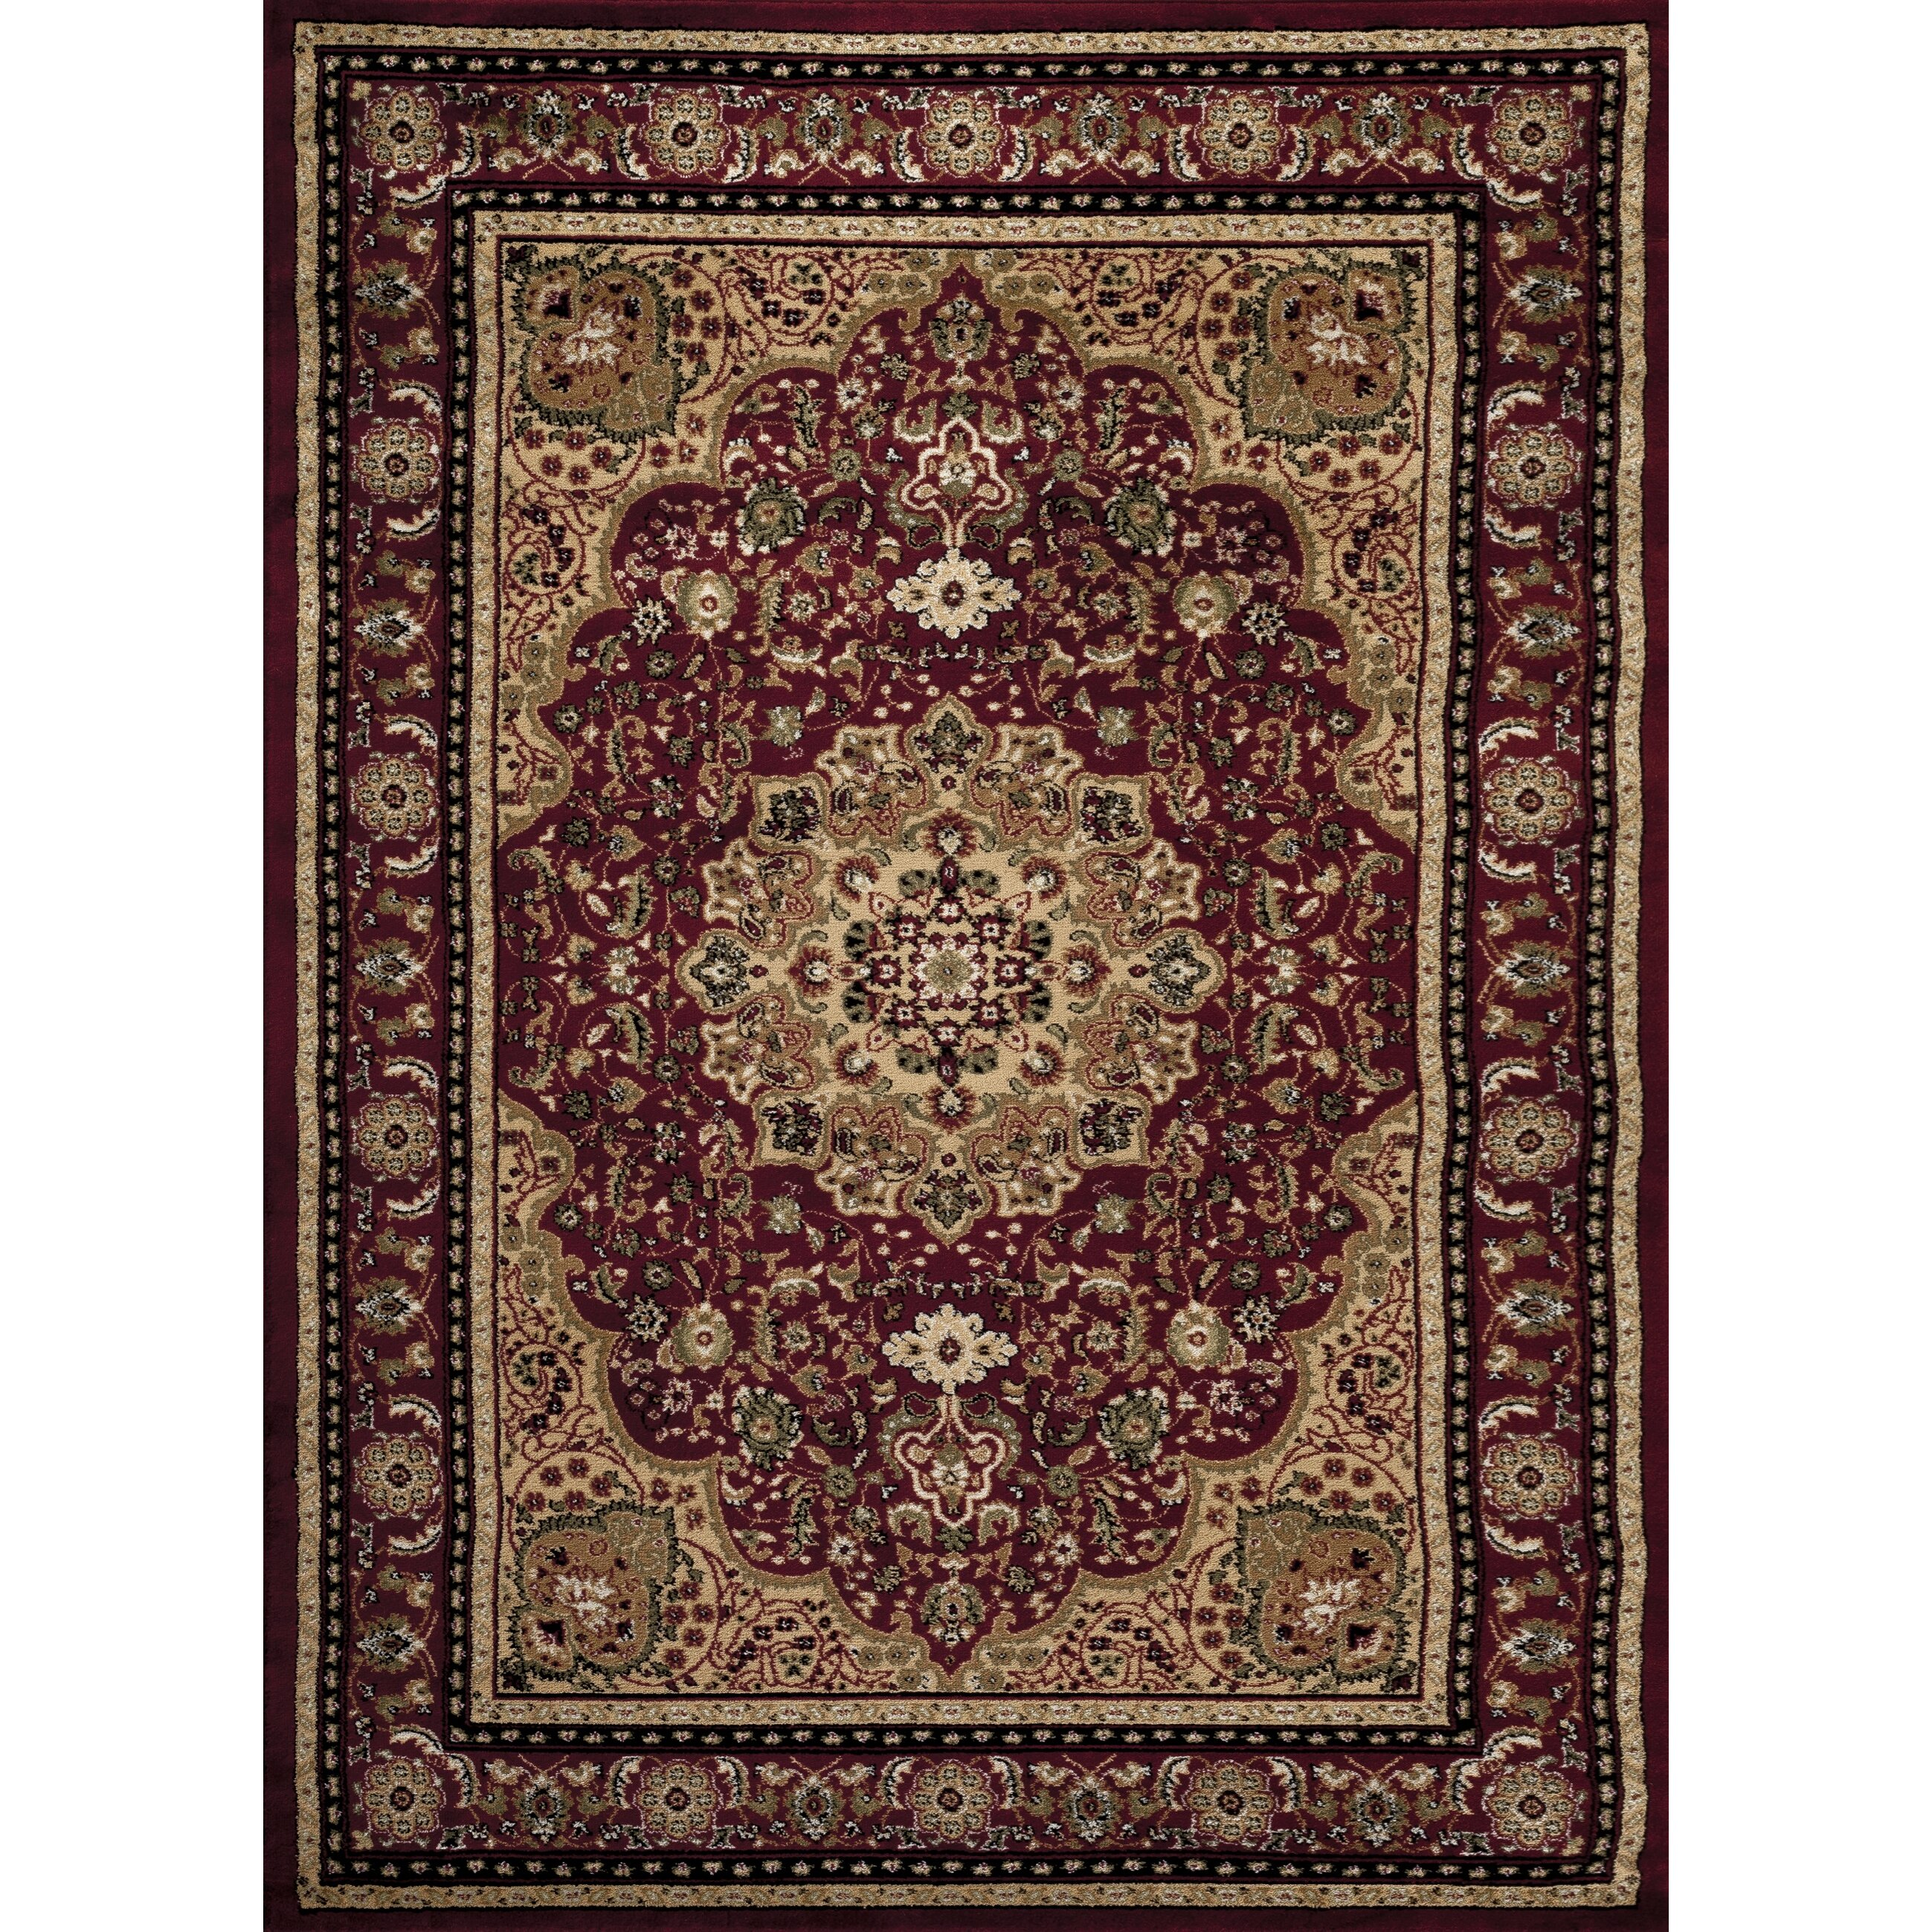 Burgandy Area Rugs